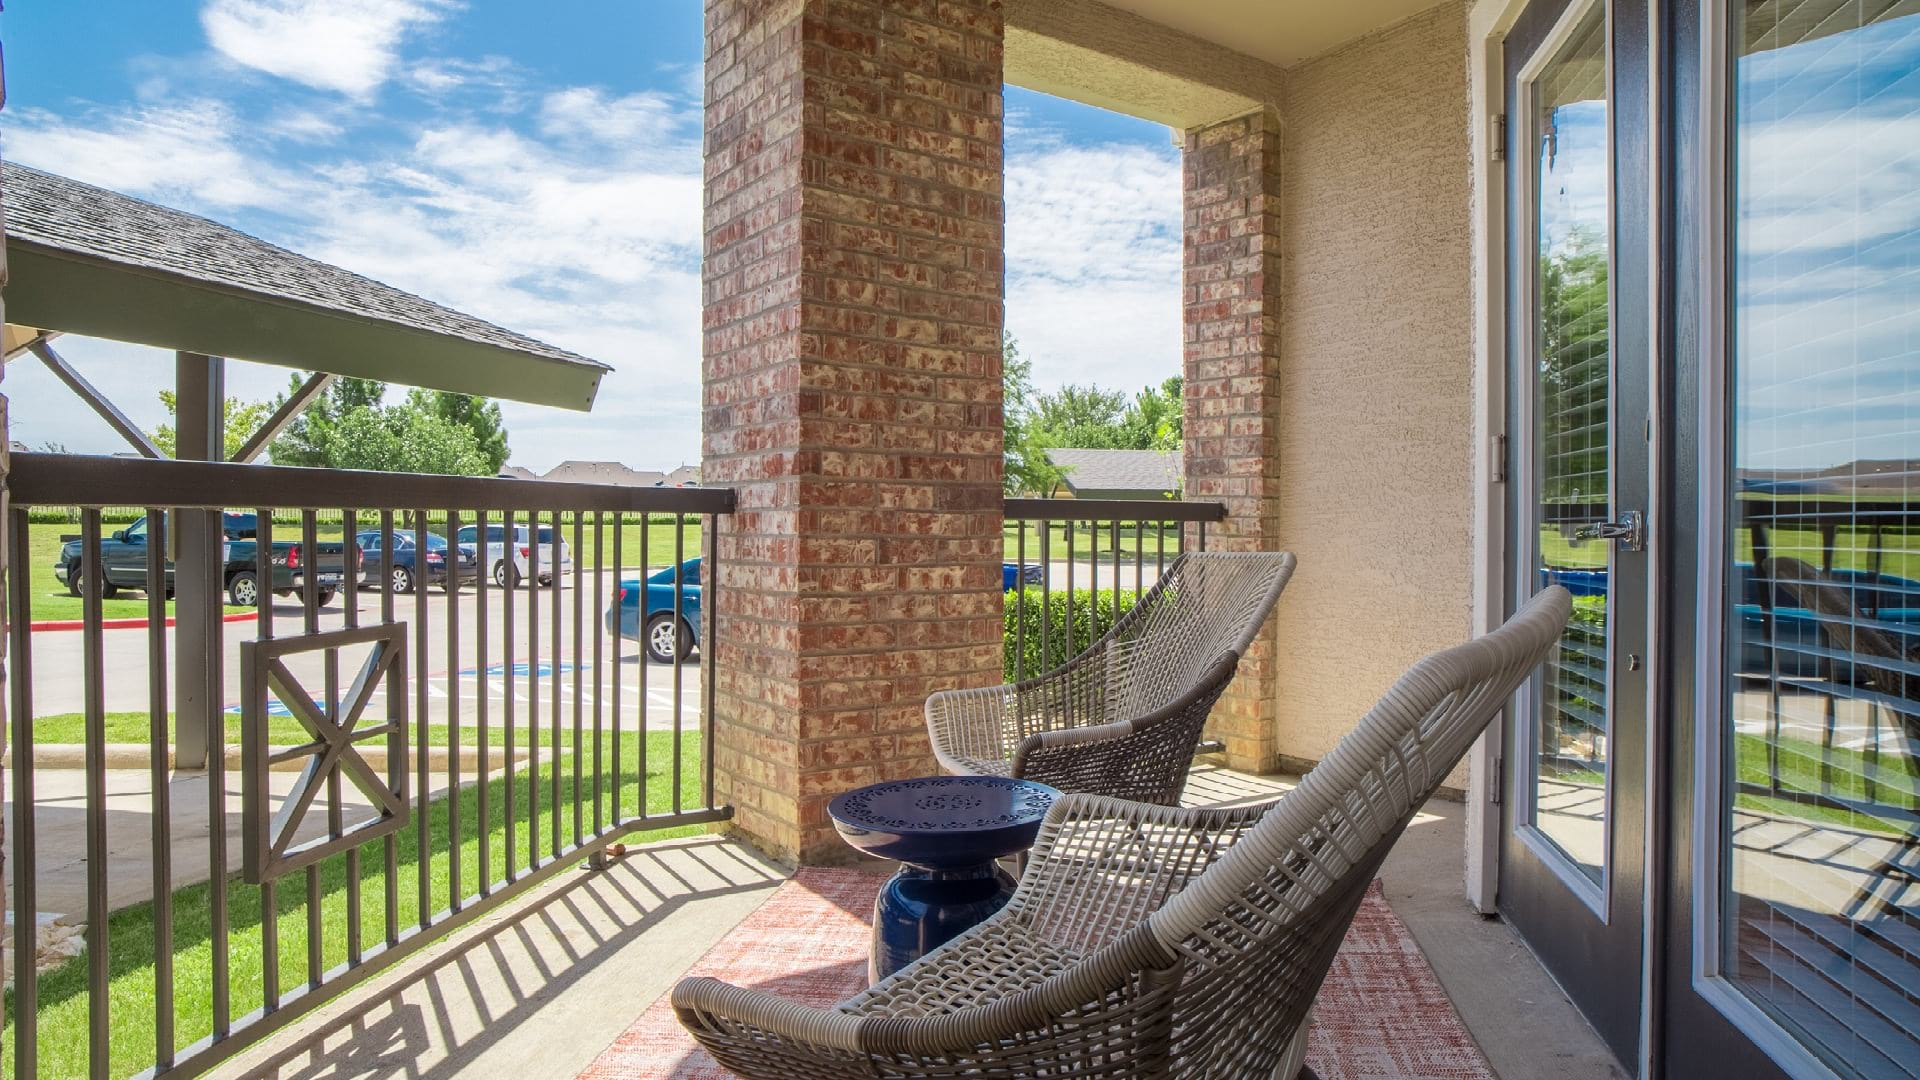 The Best of the Metroplex at Your Doorstep